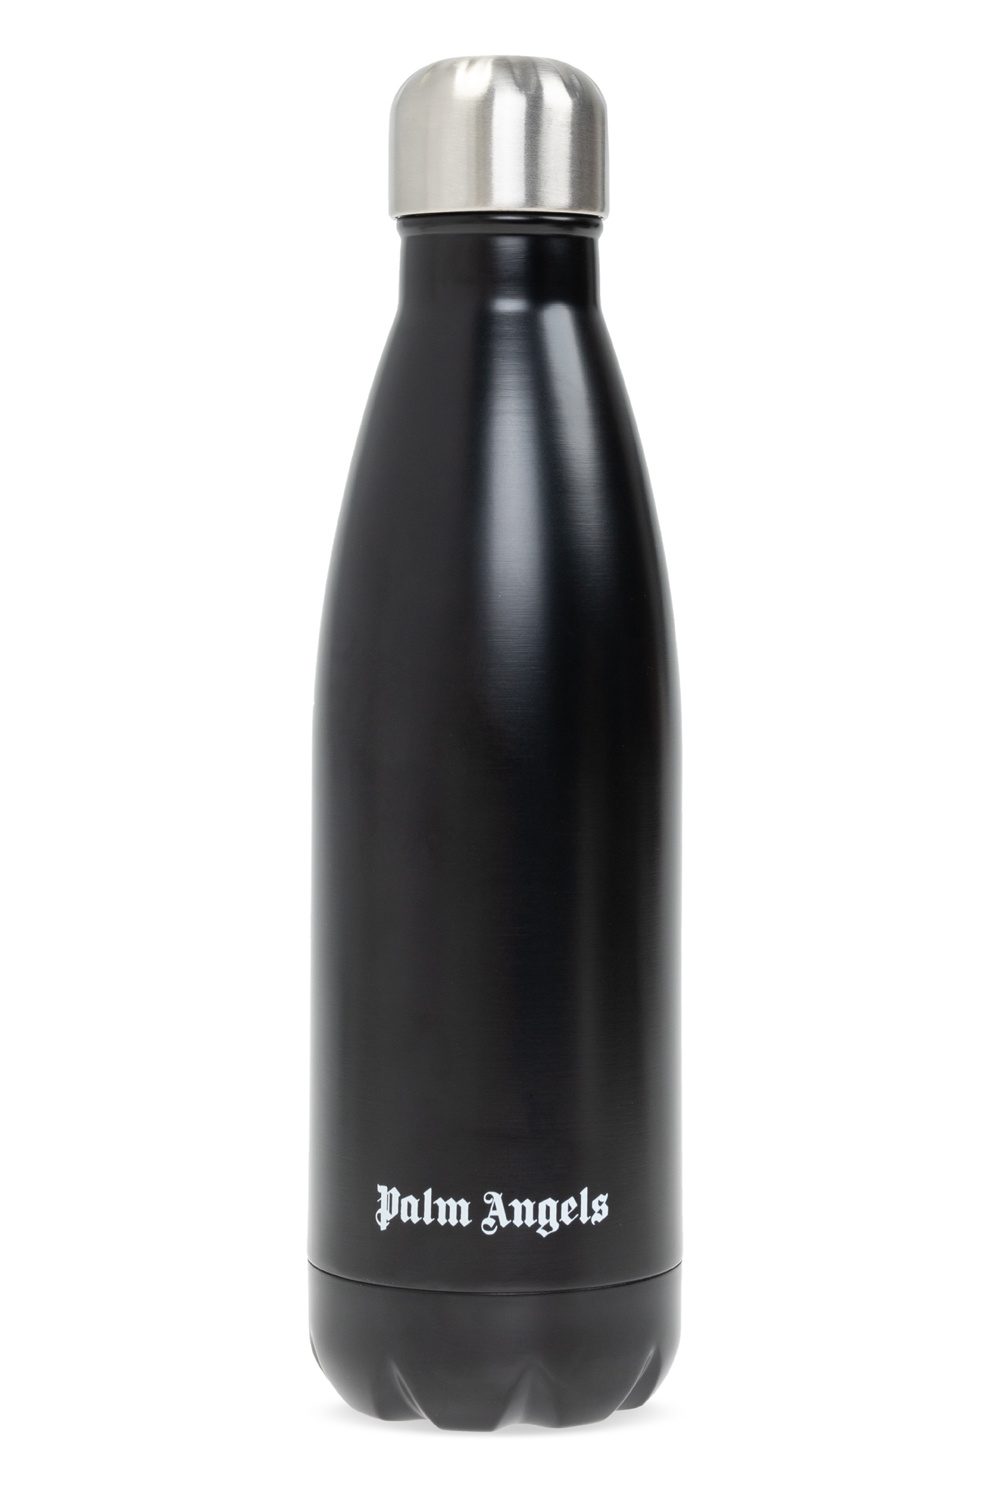 Palm Angels Thermal bottle